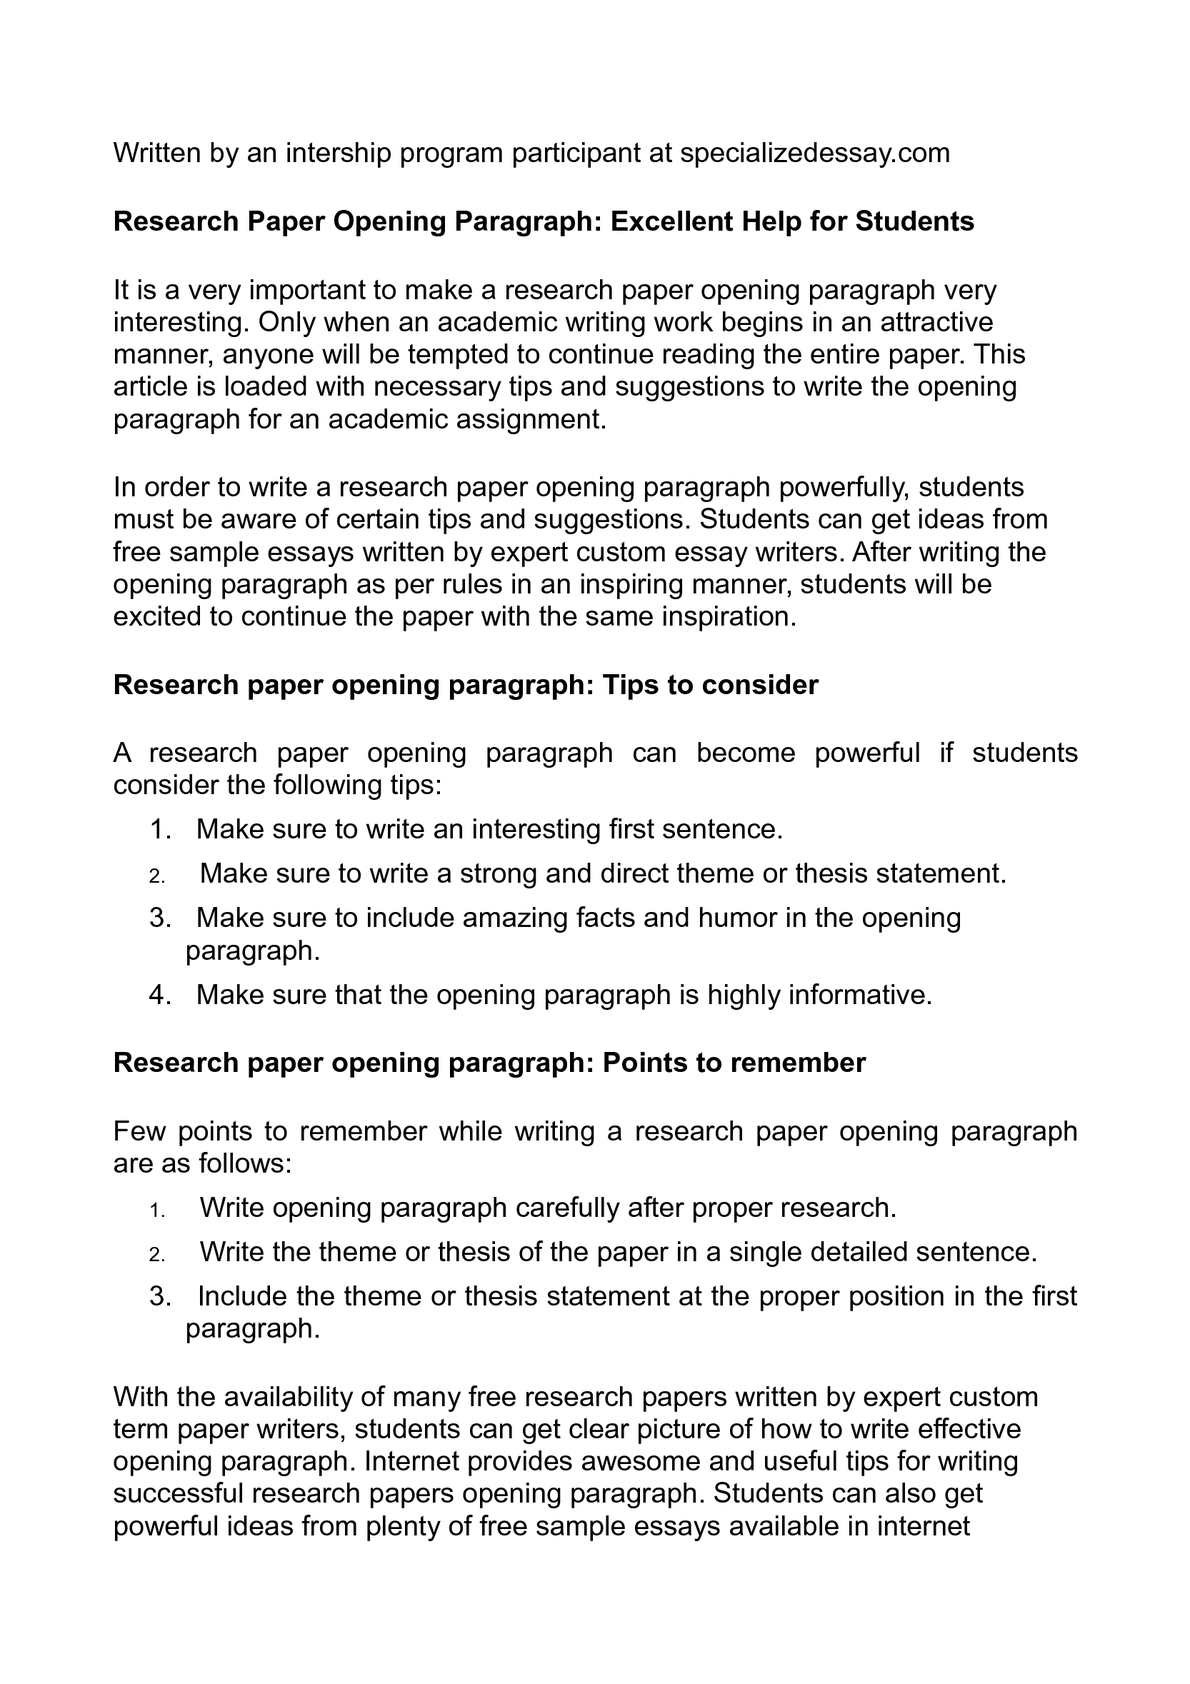 005 Research Paper How To Start Paragraph Stirring A New In Your Introduction On An Opening Full